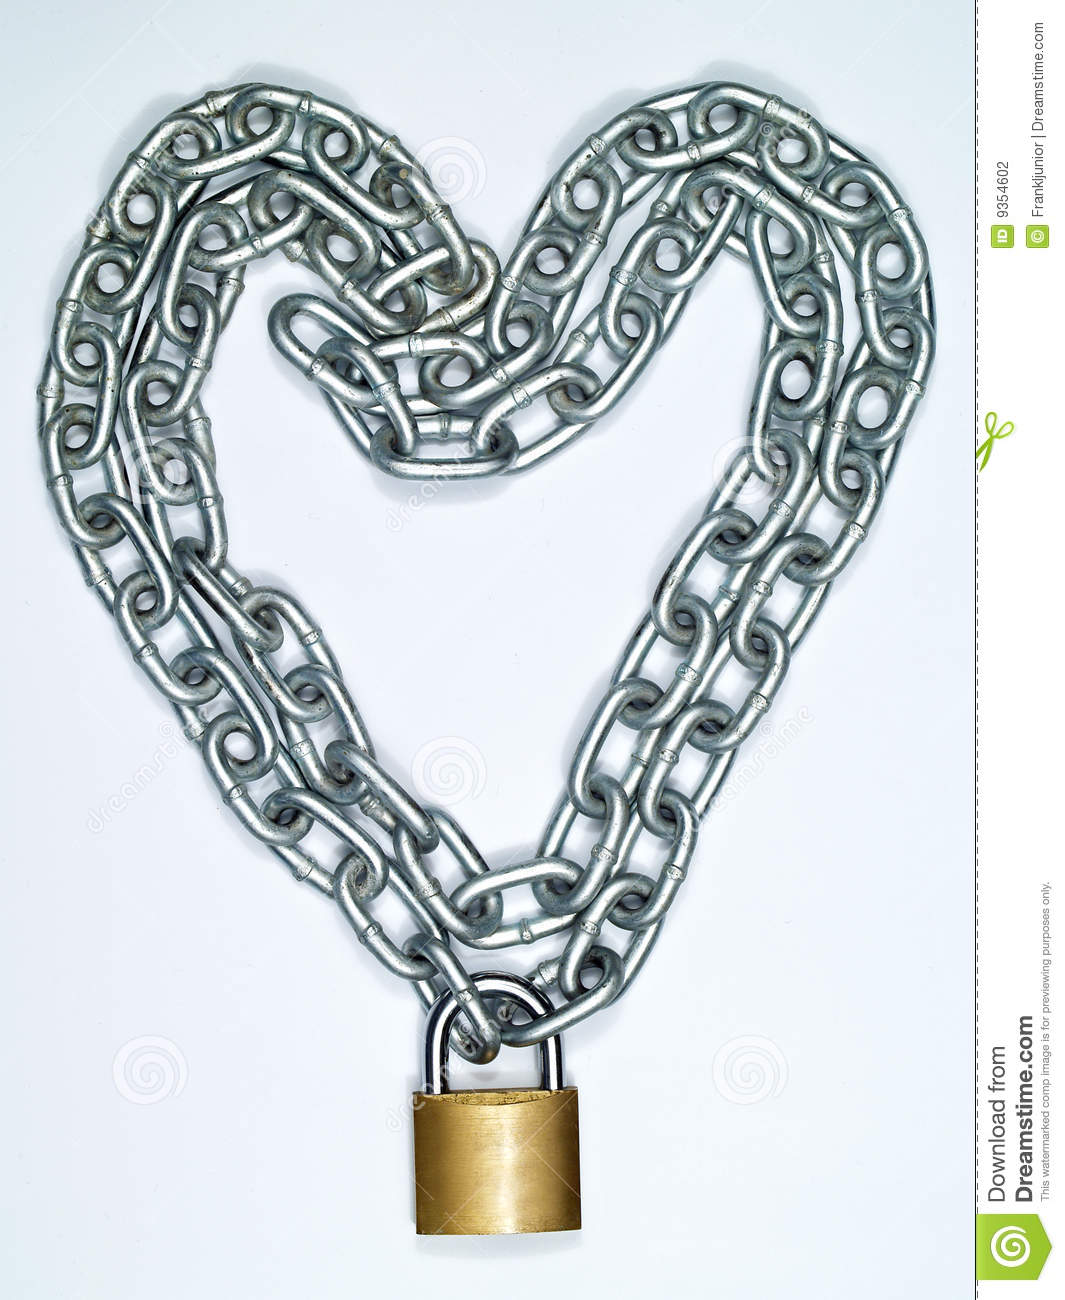 Heart Chain And Lock Stock Photography - Image: 9354602